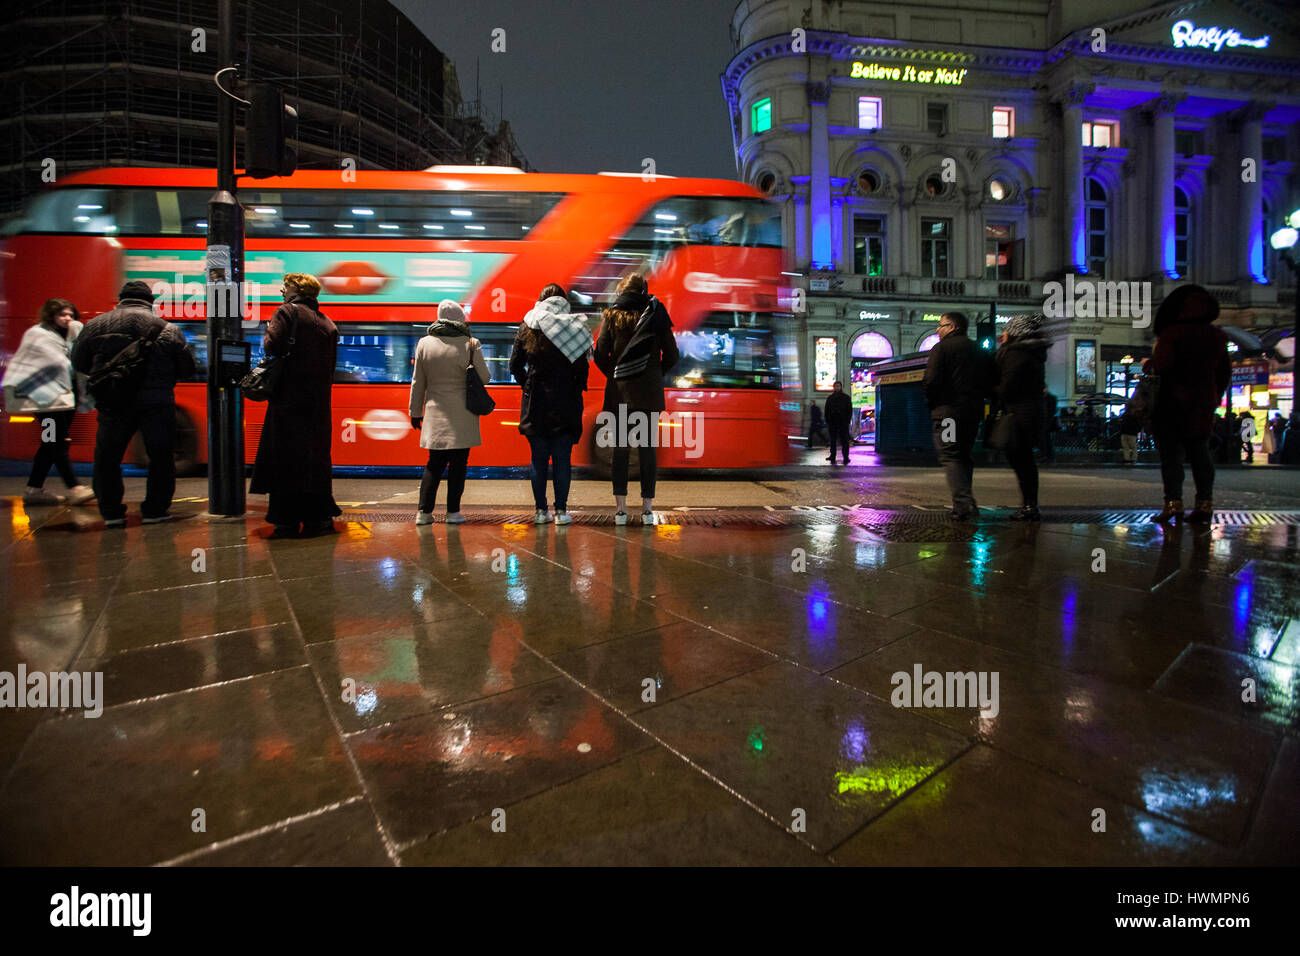 london routemaster bus in piccadilly circus people standing in the rain - Stock Image